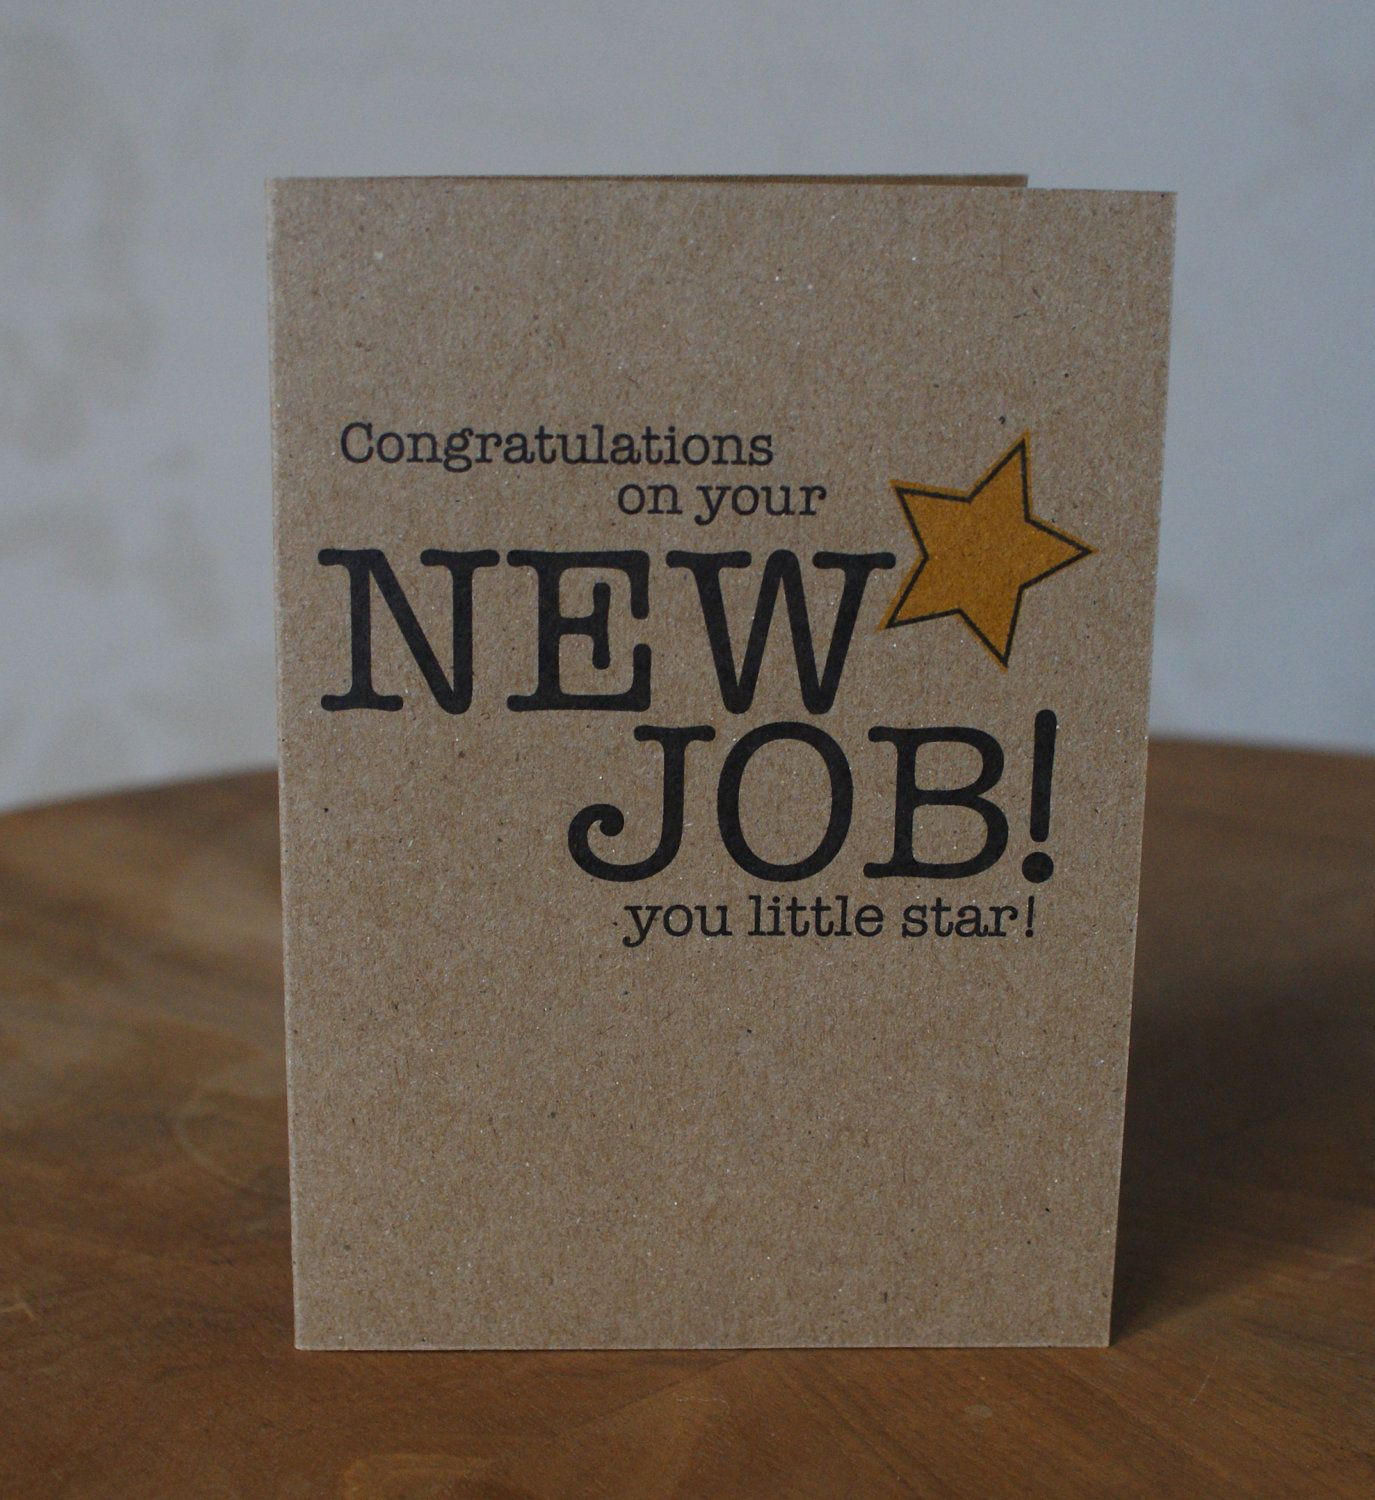 congratulations on your new job congratulations new job card you congratulations on your new job congratulations new job card you little star by twras on